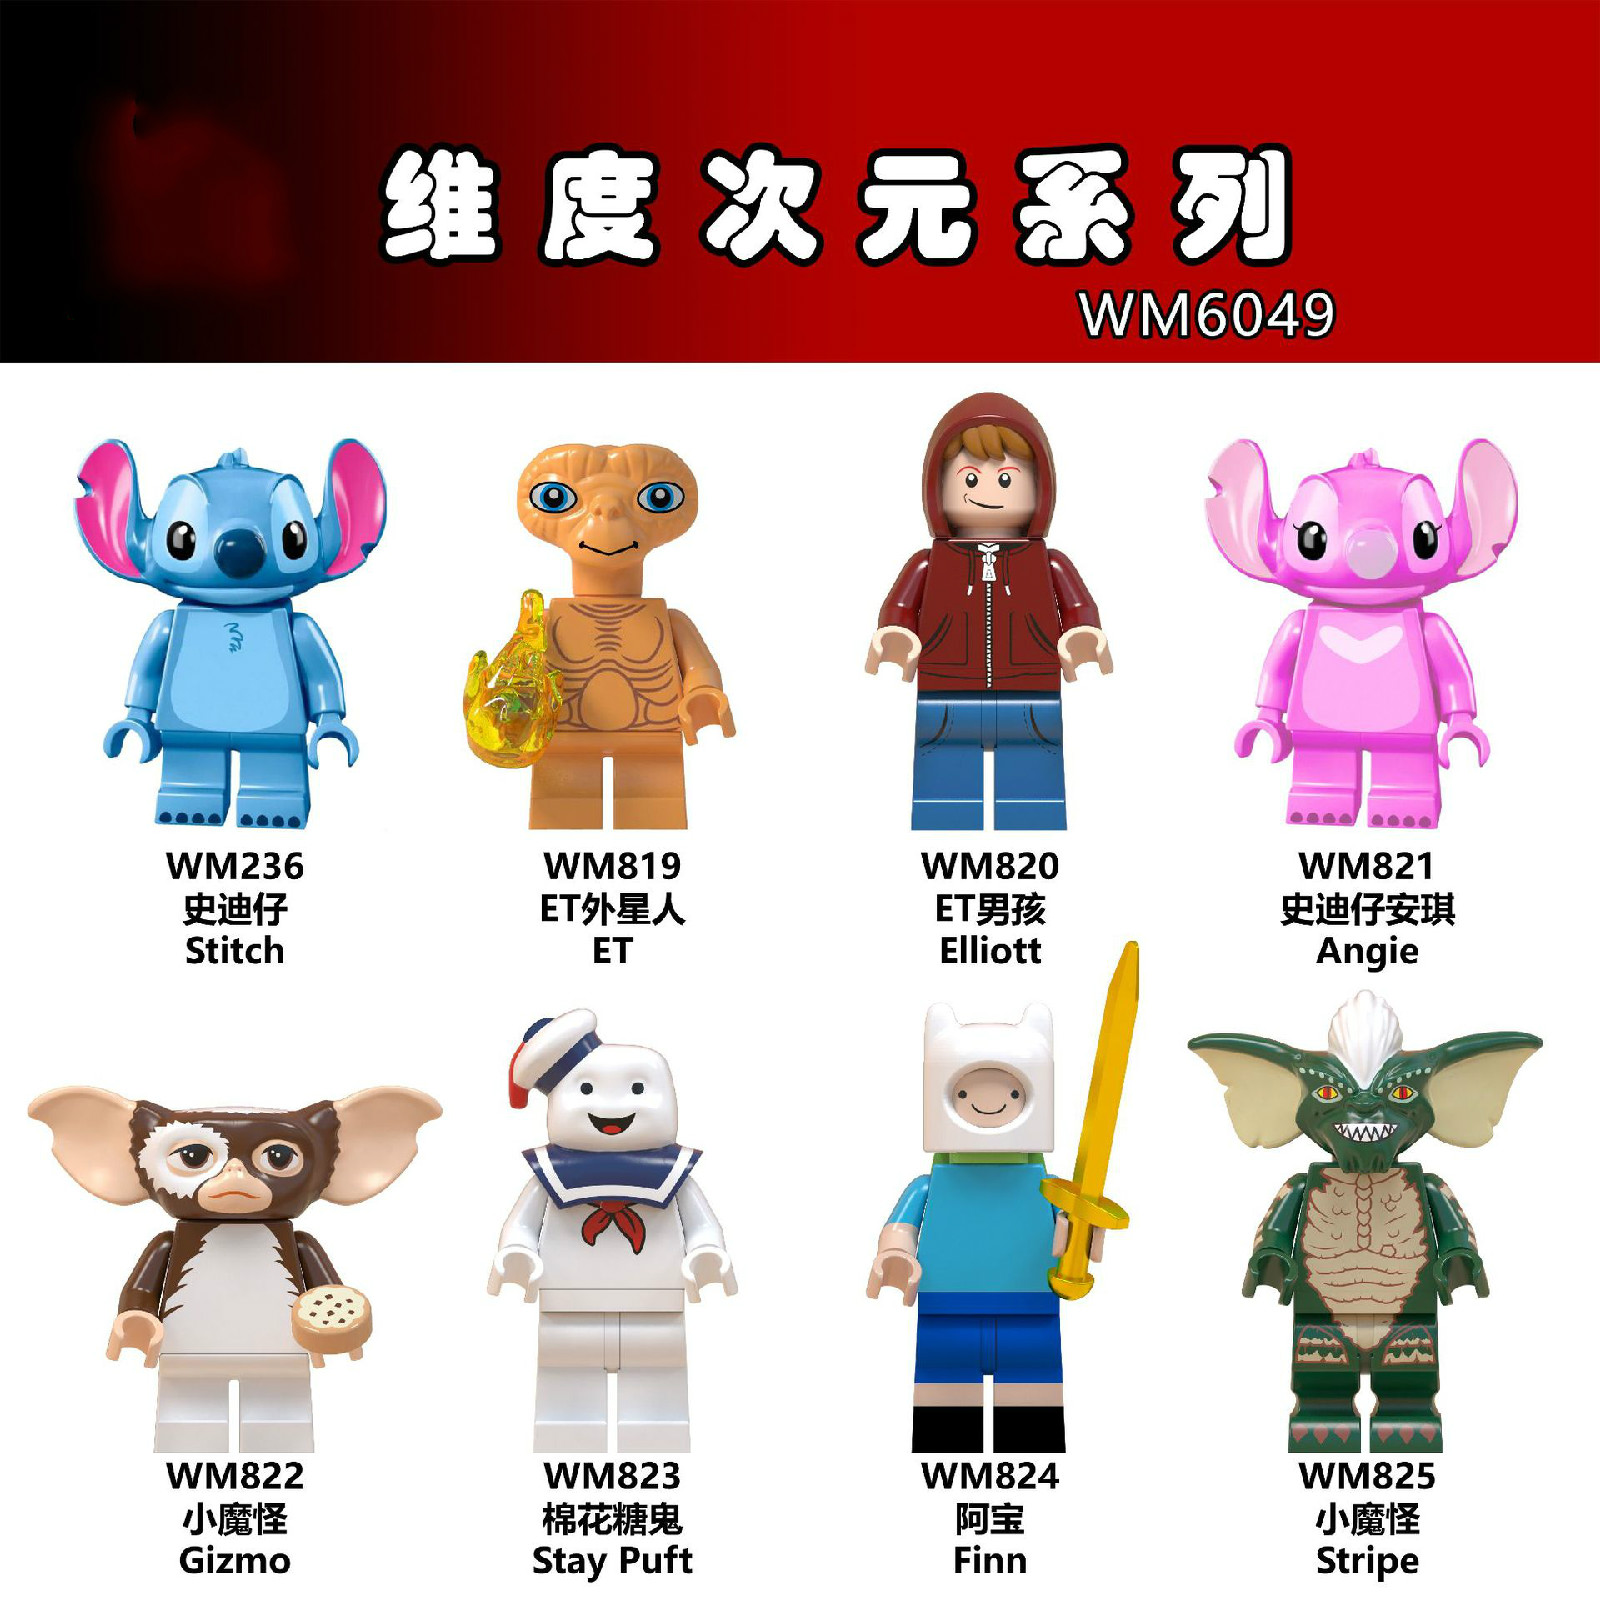 Cartoon Figures Gremlins Stripe Gizmo Stitch Alien Angie Stay Puft Friends Model Building Blocks Toys For Children Gift